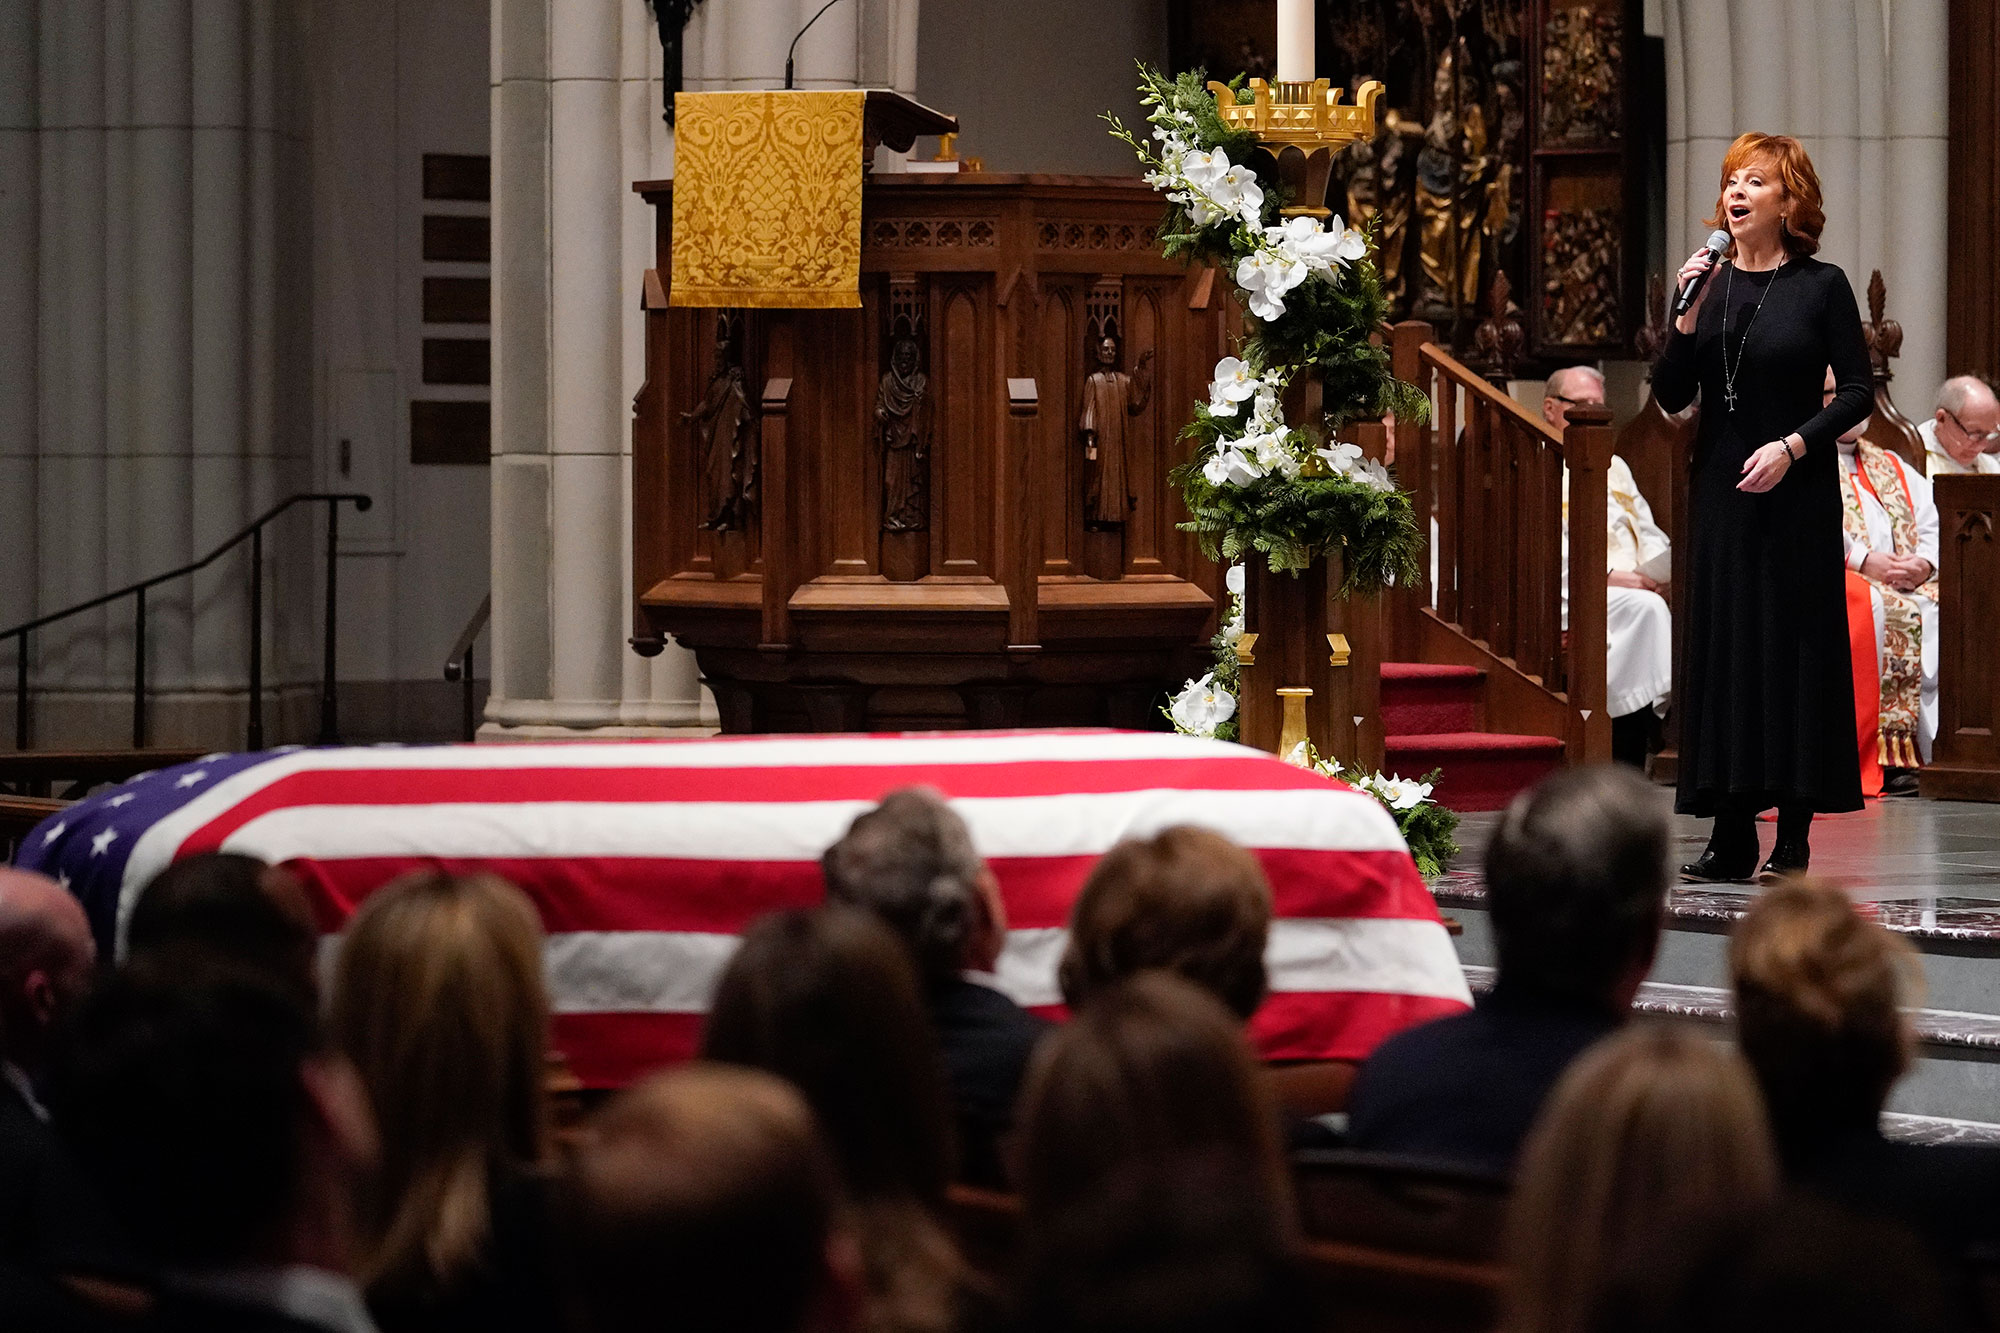 <div class='meta'><div class='origin-logo' data-origin='none'></div><span class='caption-text' data-credit='David J. Phillip, Pool/AP Photo'>Reba McEntire sings &#34;The Lord's Prayer&#34; during a funeral service for former President George H.W. Bush at St. Martin's Episcopal Church Thursday, Dec. 6, 2018, in Houston.</span></div>